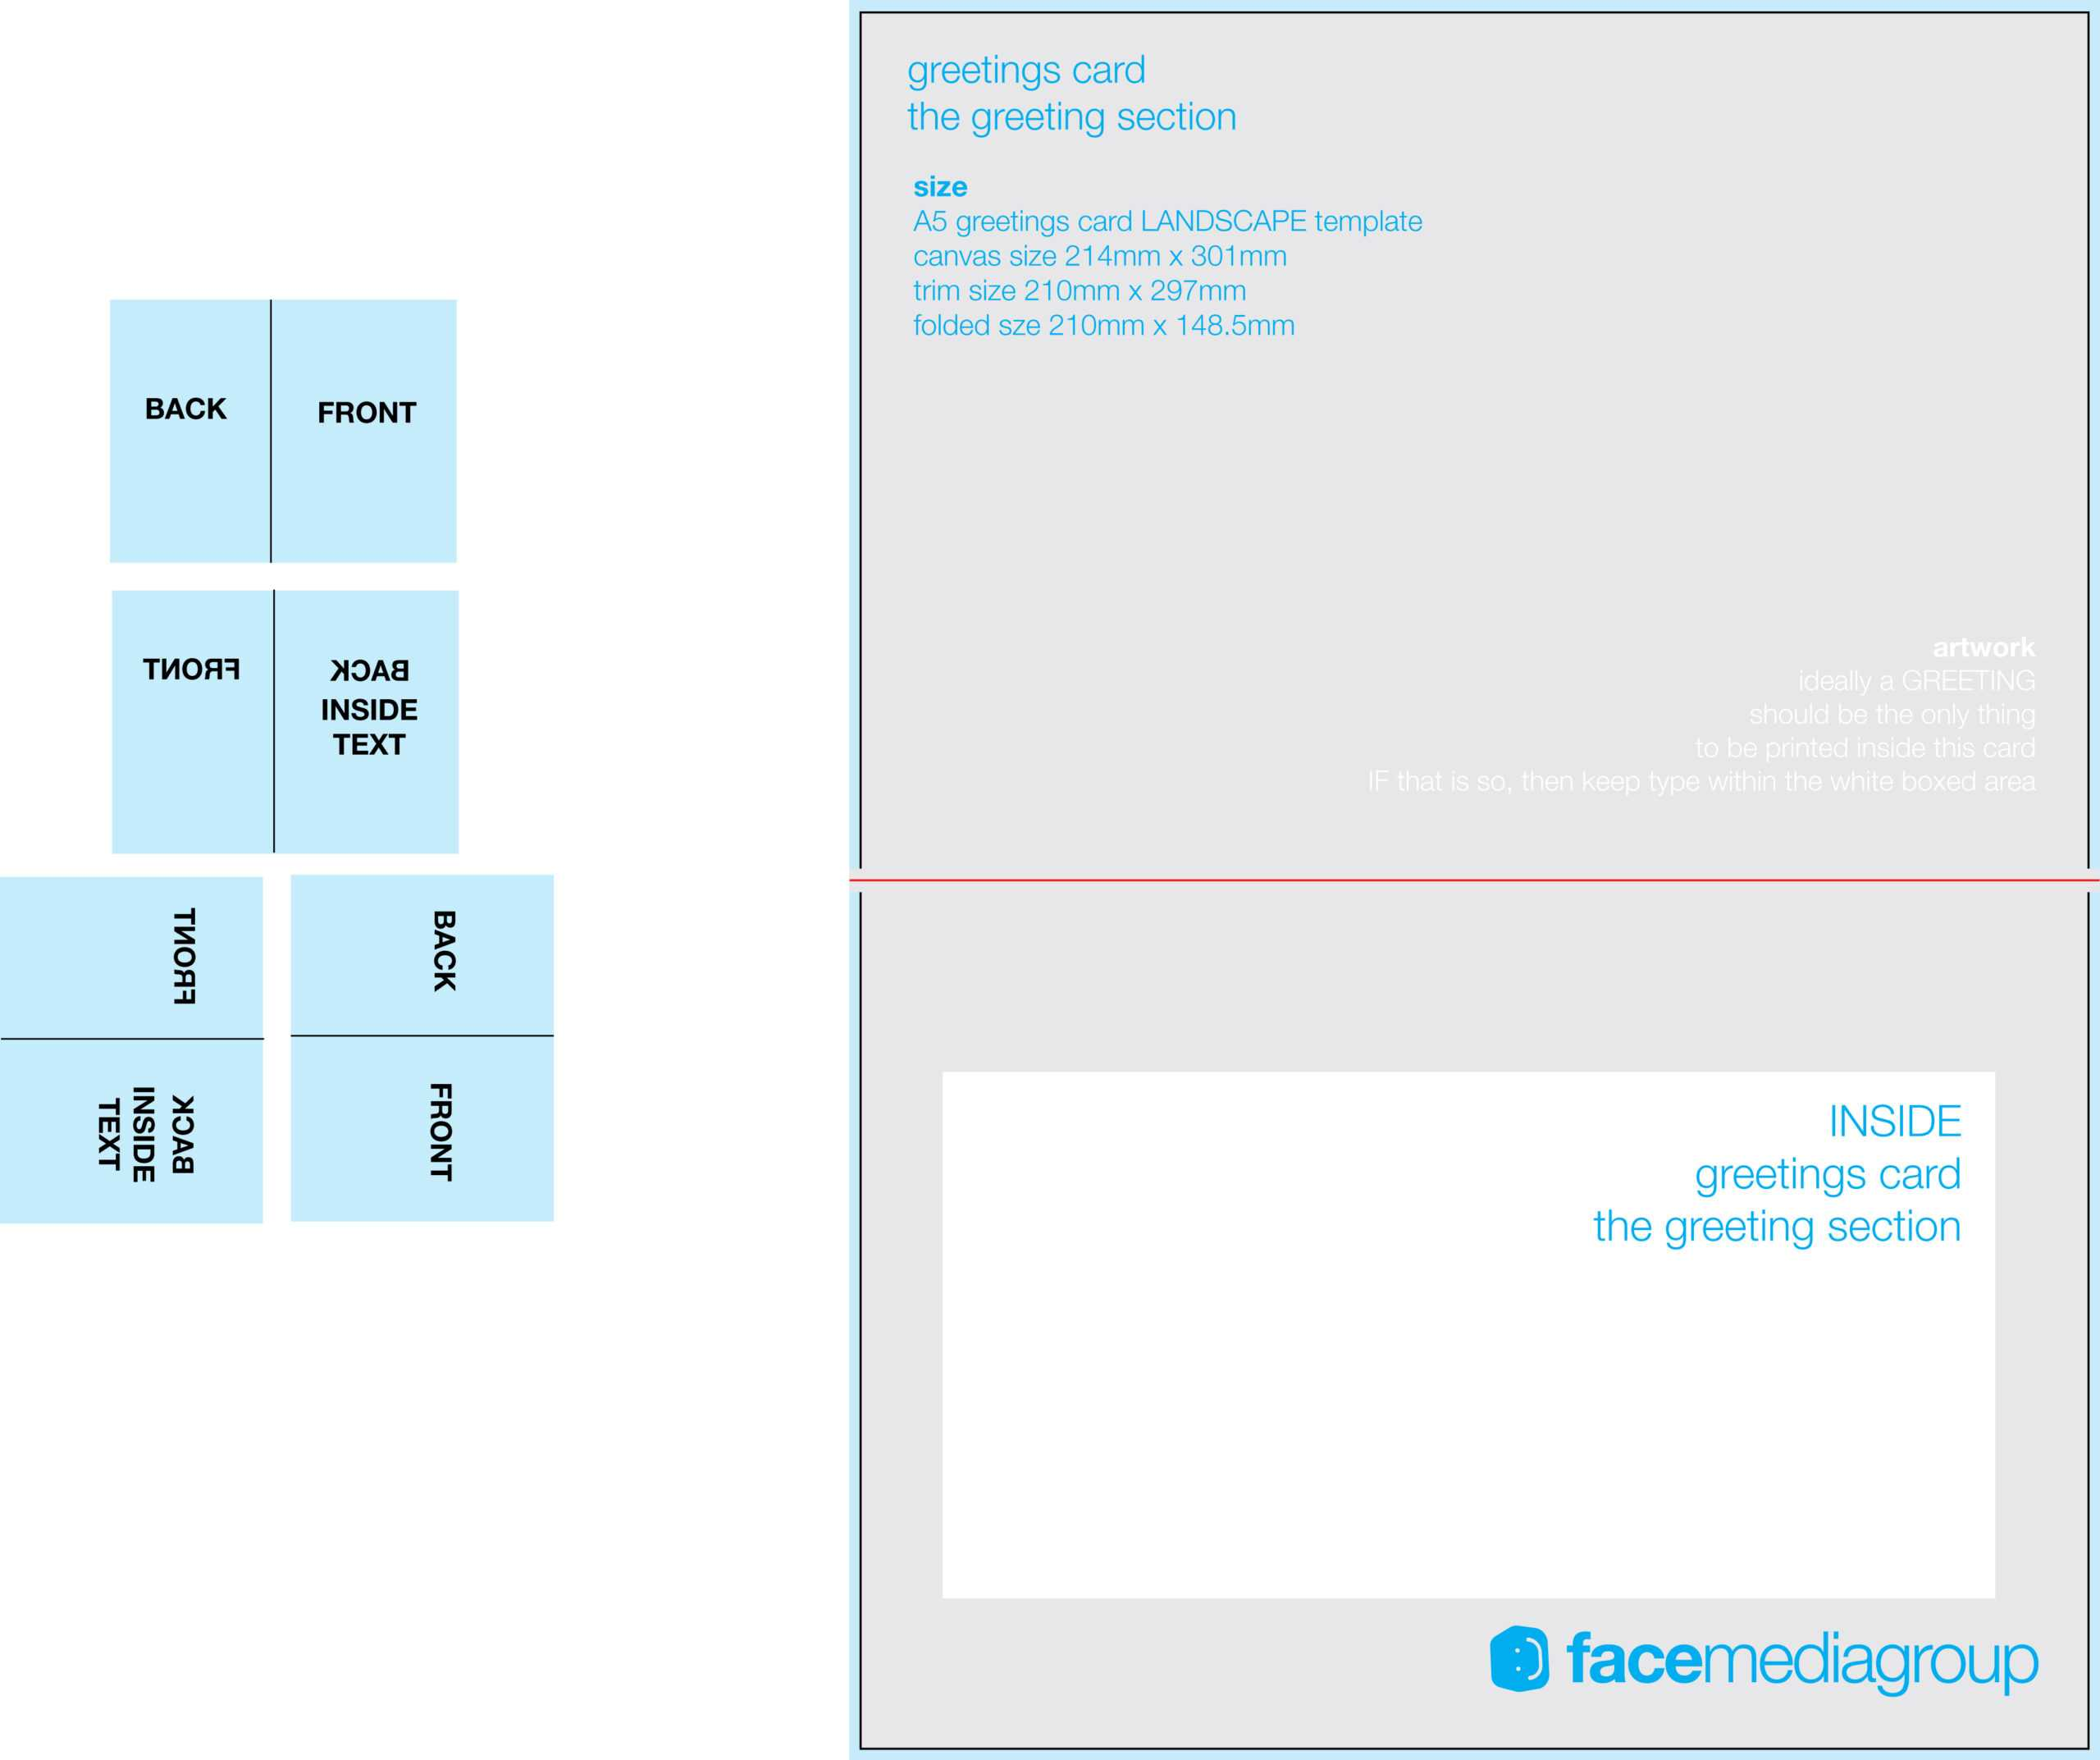 Free Blank Greetings Card Artwork Templates For Download Within Greeting Card Layout Templates